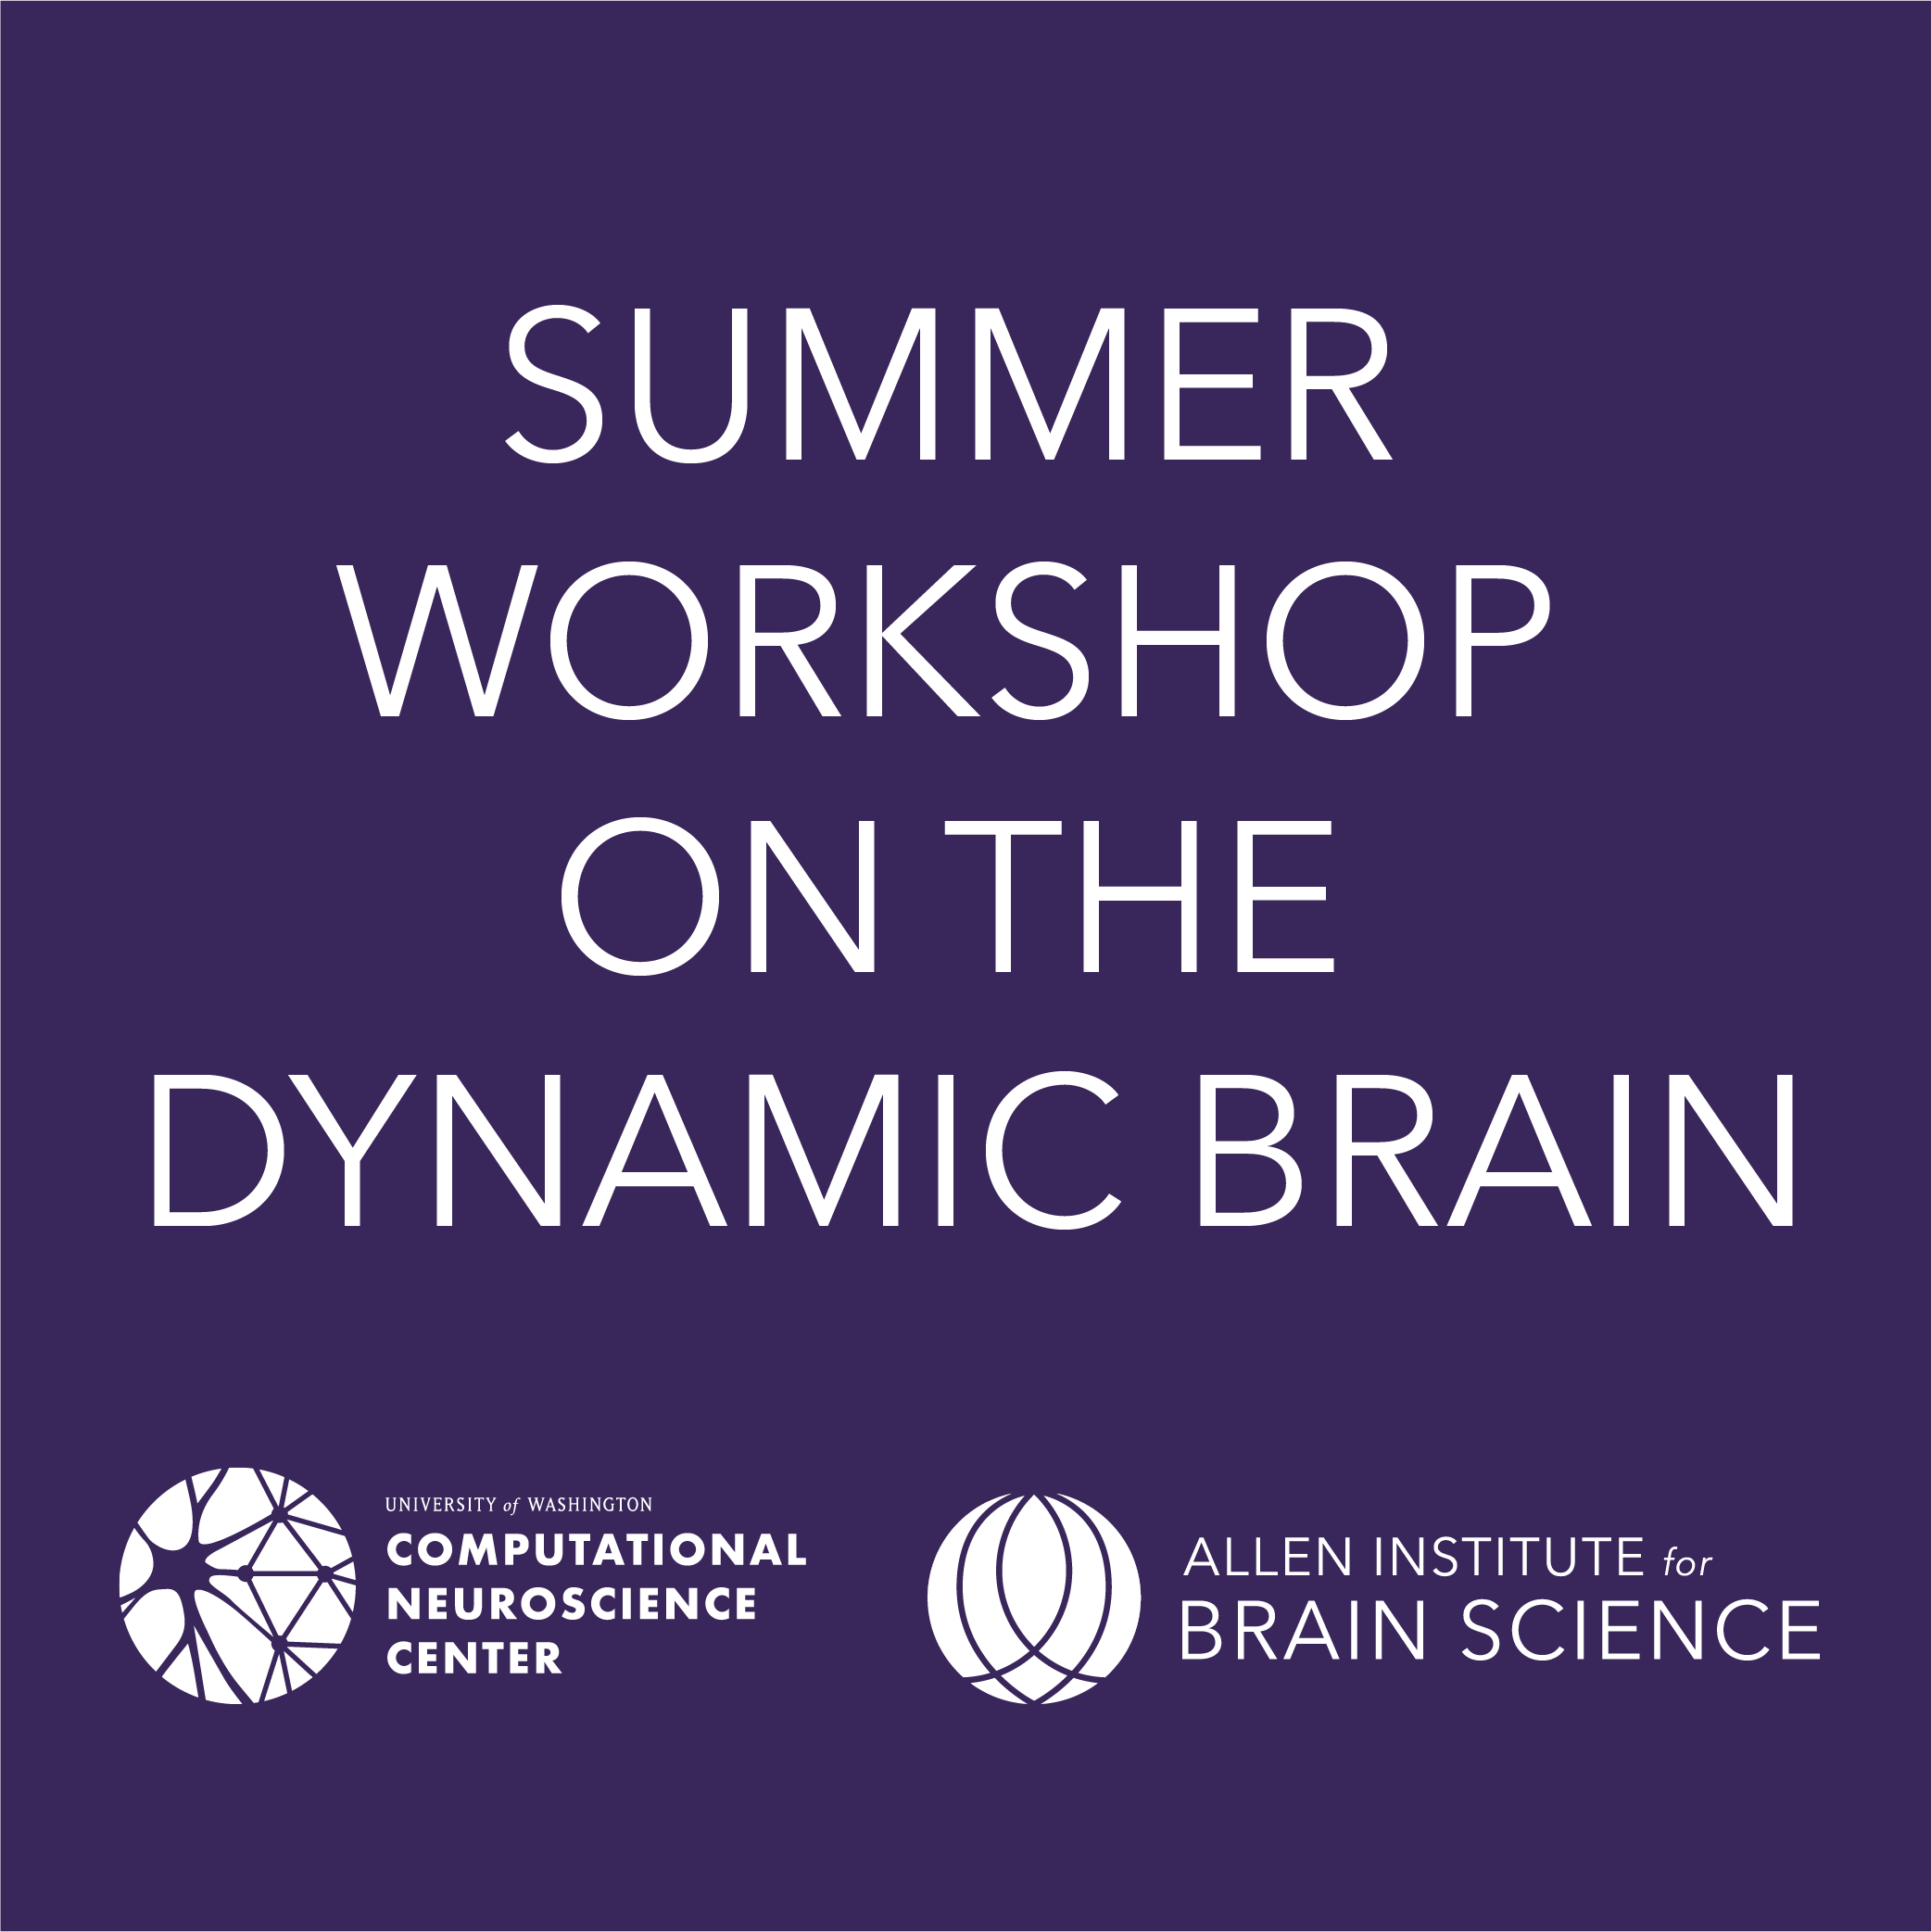 How To Apply Brain Science Of >> Summer Workshop On The Dynamic Brain 2019